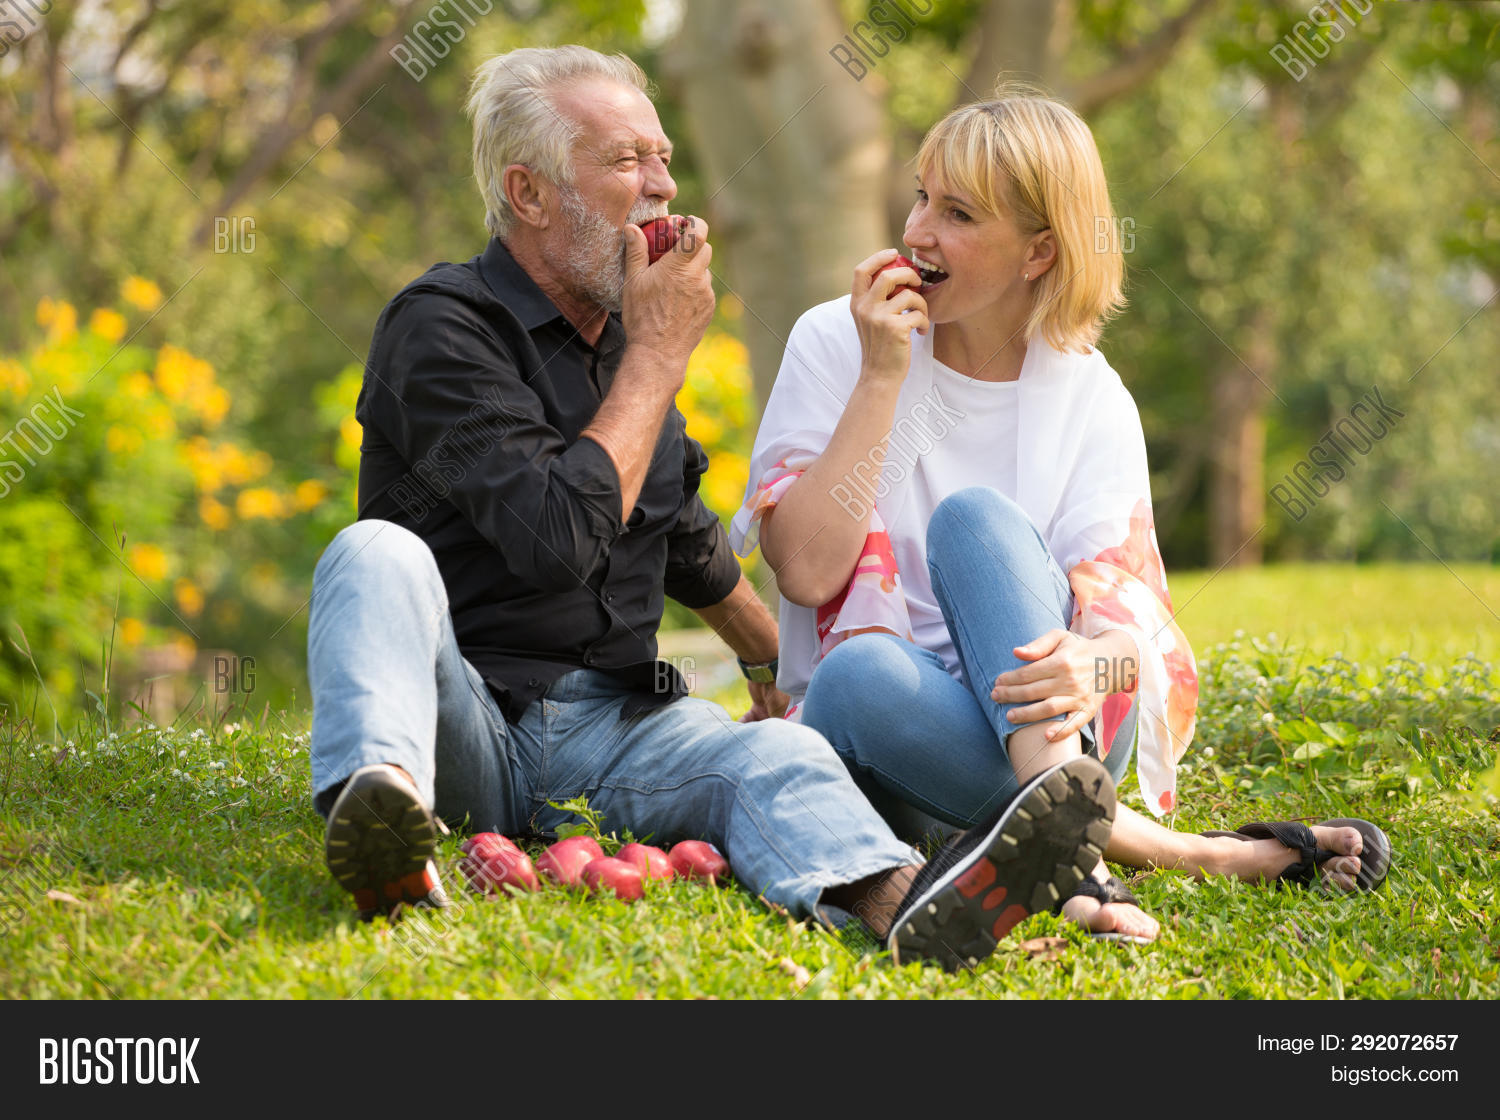 adult,aged,apple,care,caucasian,couple,eating,elder,elderly,family,female,food,fruit,fun,happy,health,healthy,husband,leisure,lifestyle,love,man,mature,natural,nature,old,older,outdoors,outside,park,pensioner,people,picnic,pleasure,recreational,relationship,relaxation,rest,retired,retirement,romance,romantic,senior,smile,together,trust,two,vegetables,wife,woman